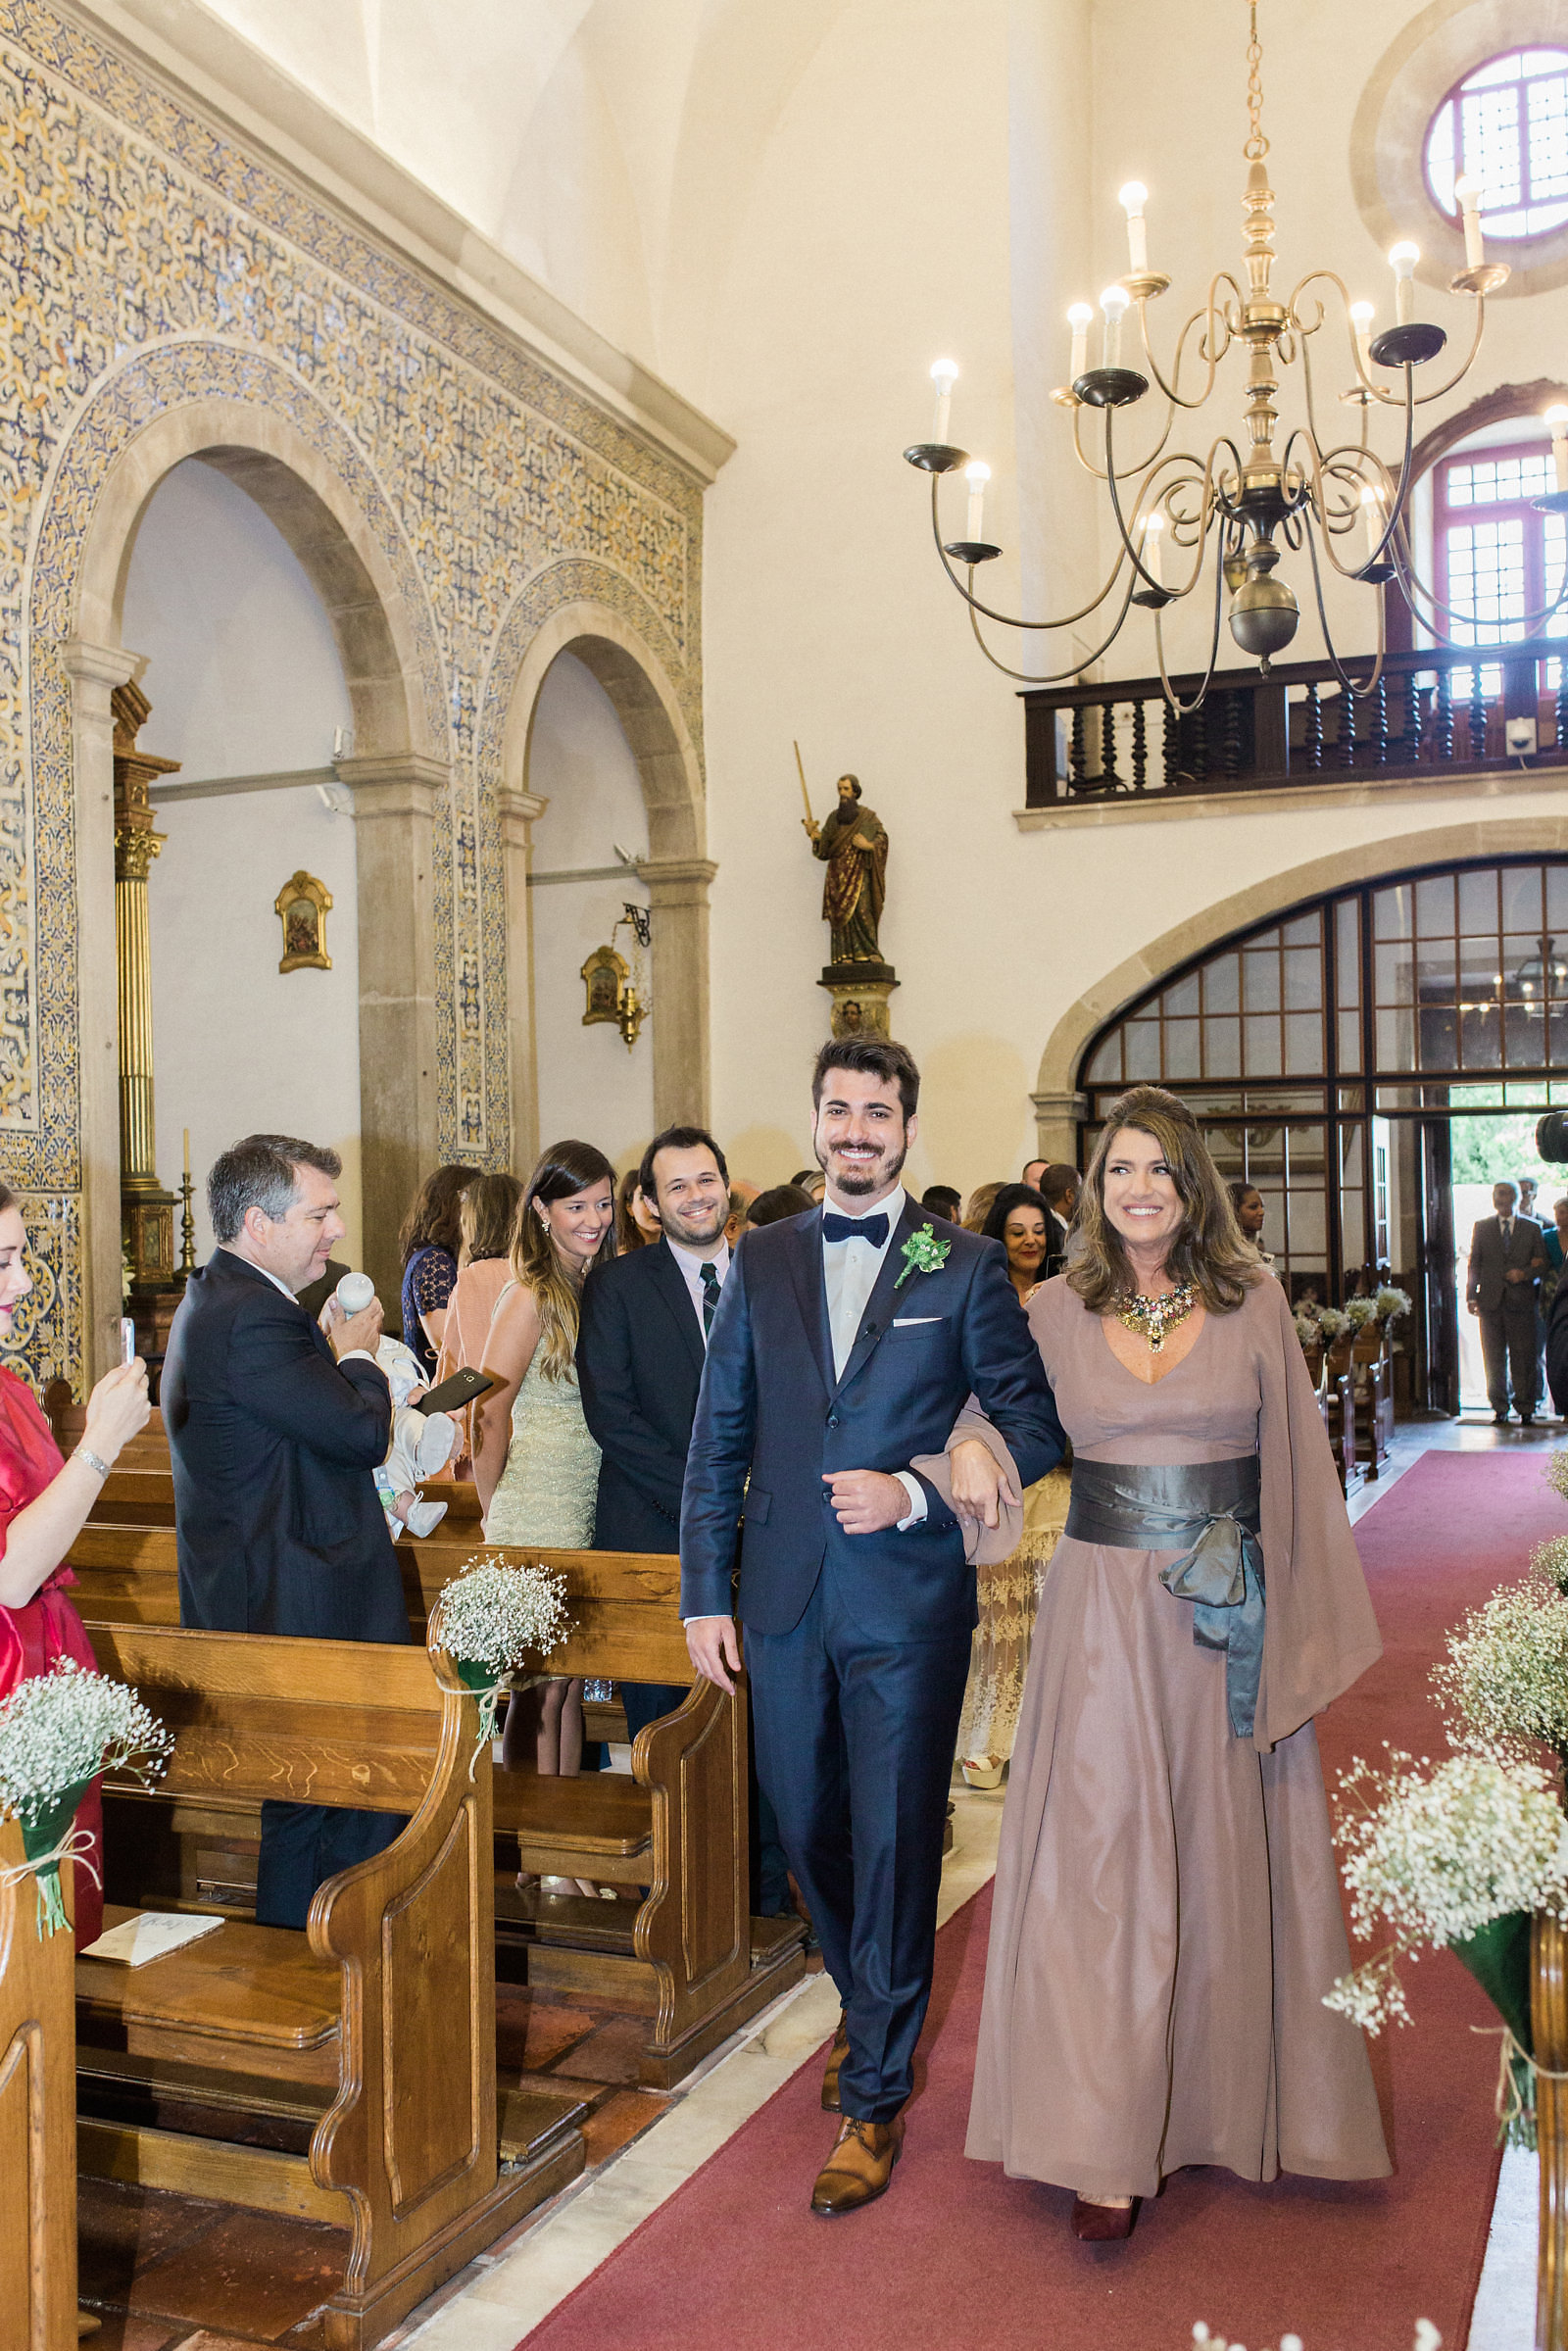 mariaraophotography_weddingsintra-135web.jpg